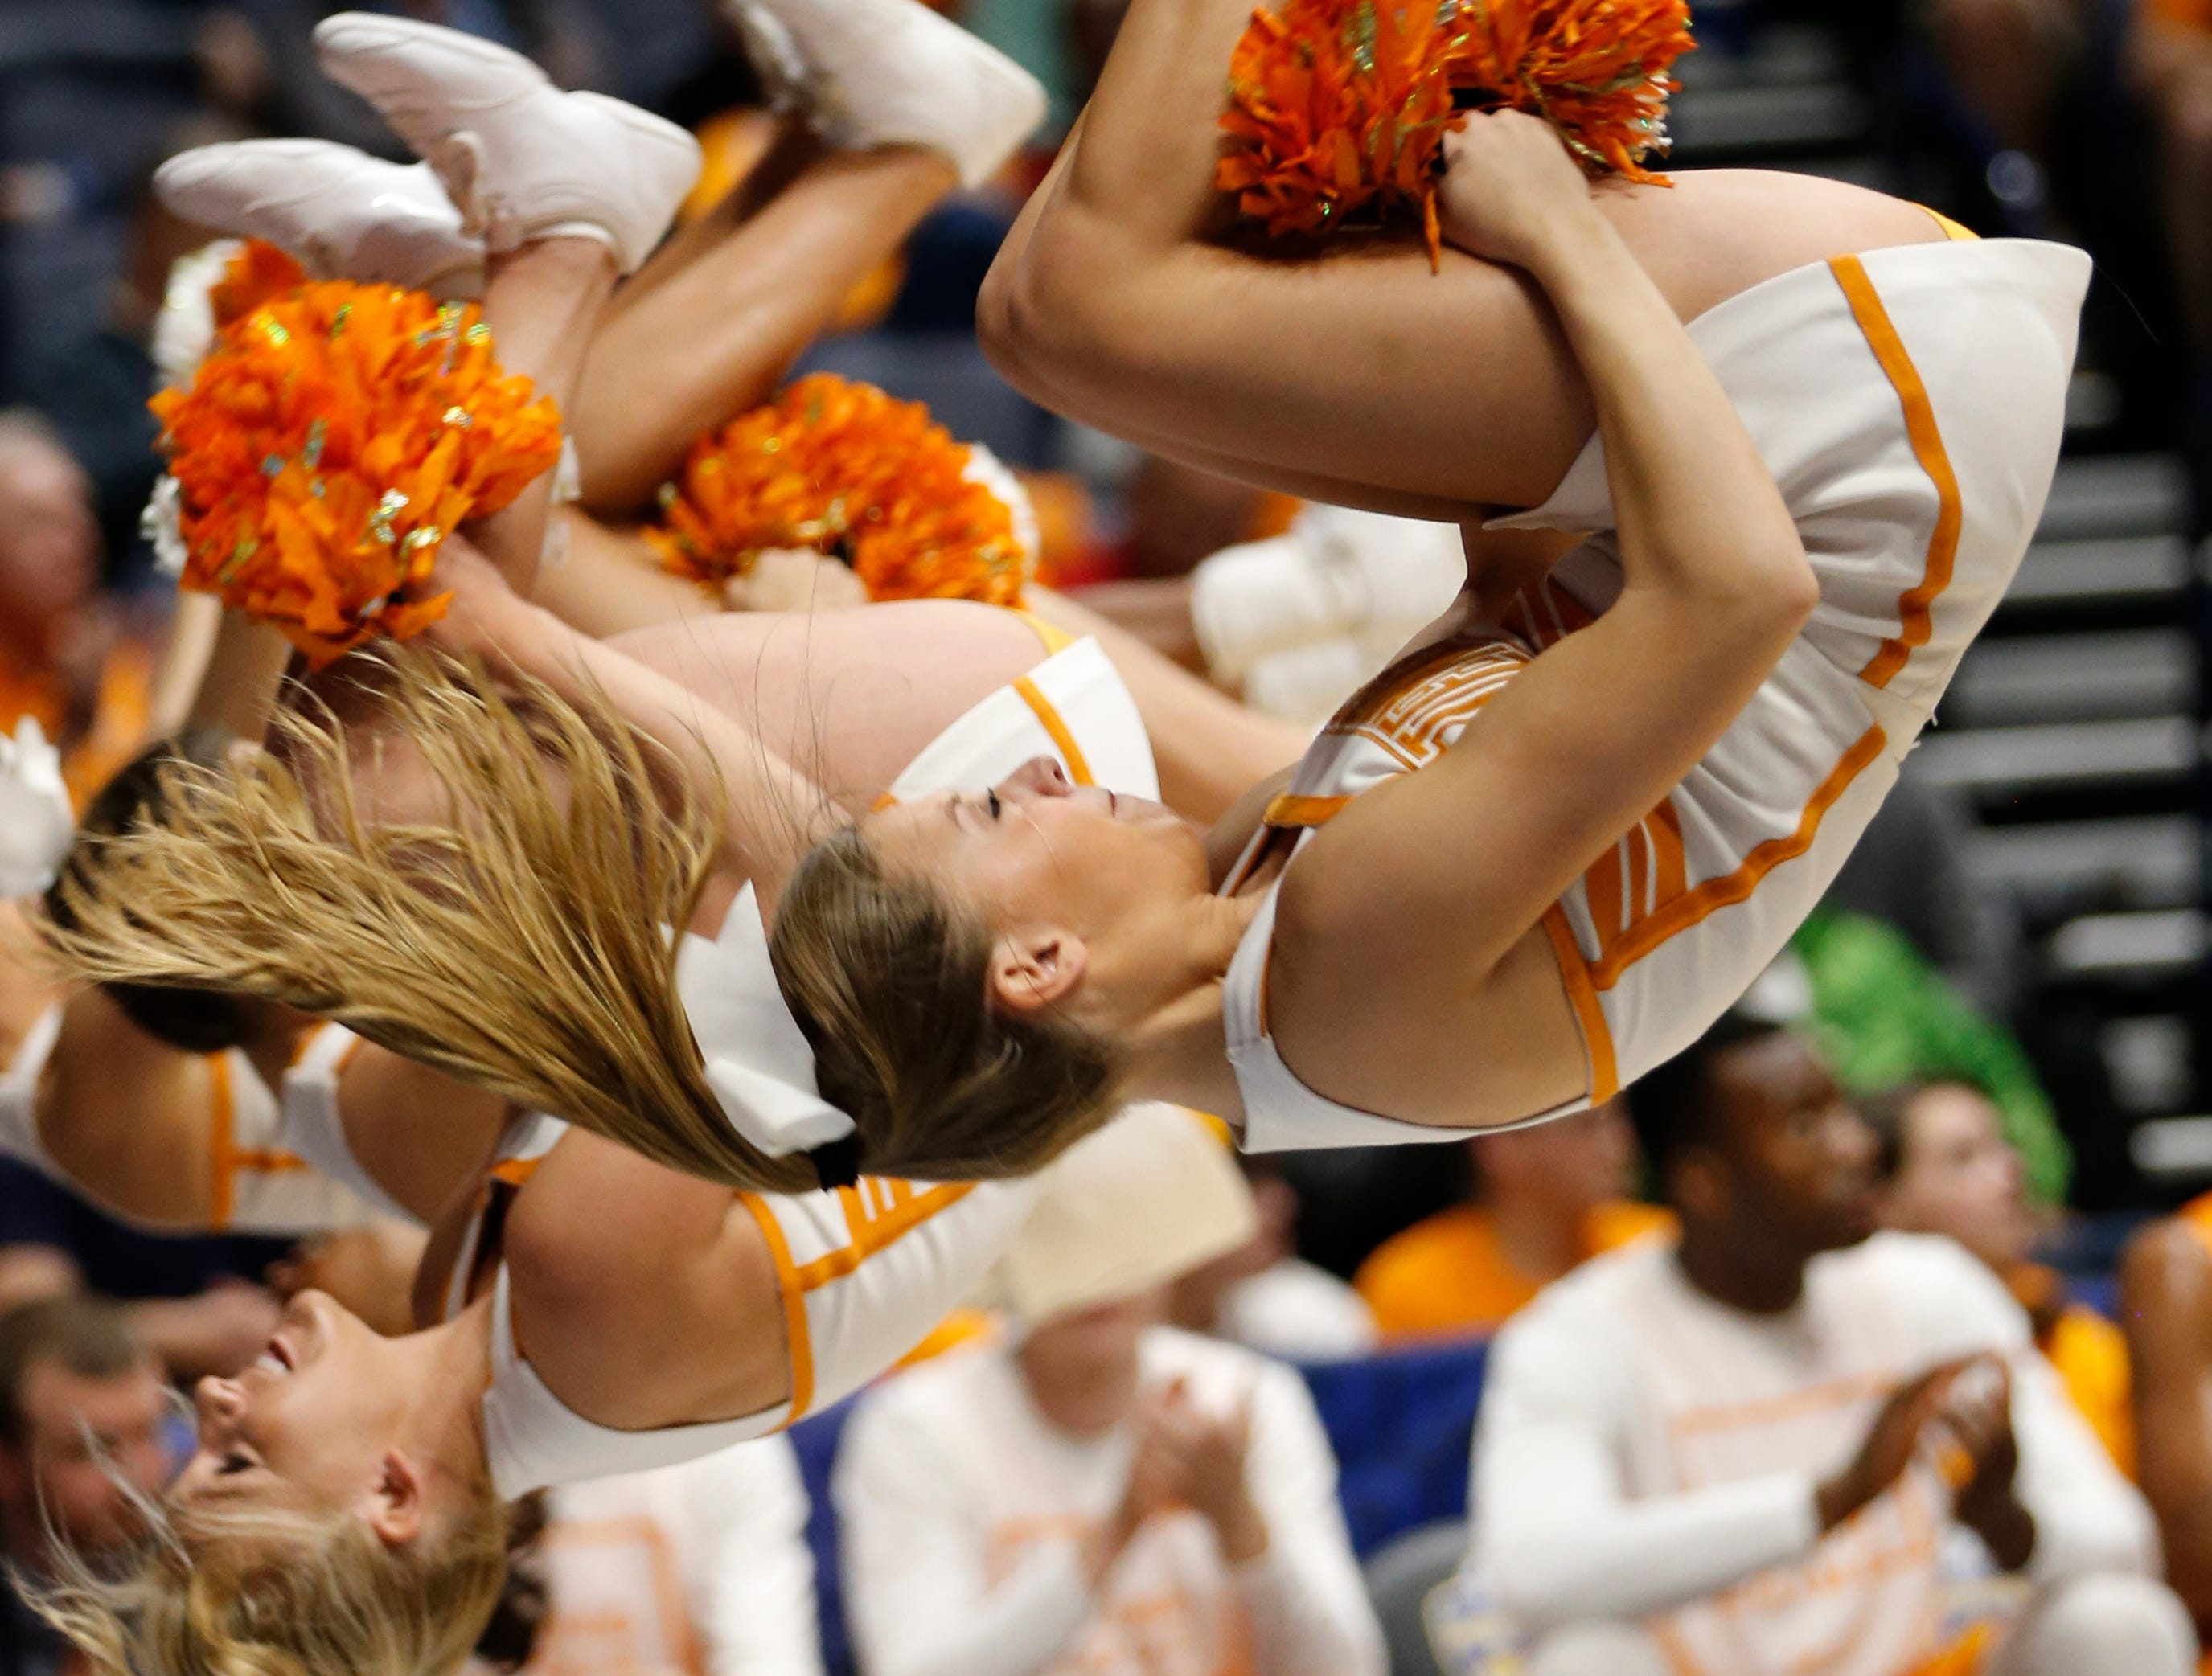 Tennessee cheerleaders perform during the first half of an NCAA college basketball game against Vanderbilt in the Southeastern Conference tournament in Nashville, Tenn., Thursday, March 10, 2016. (AP Photo/John Bazemore)